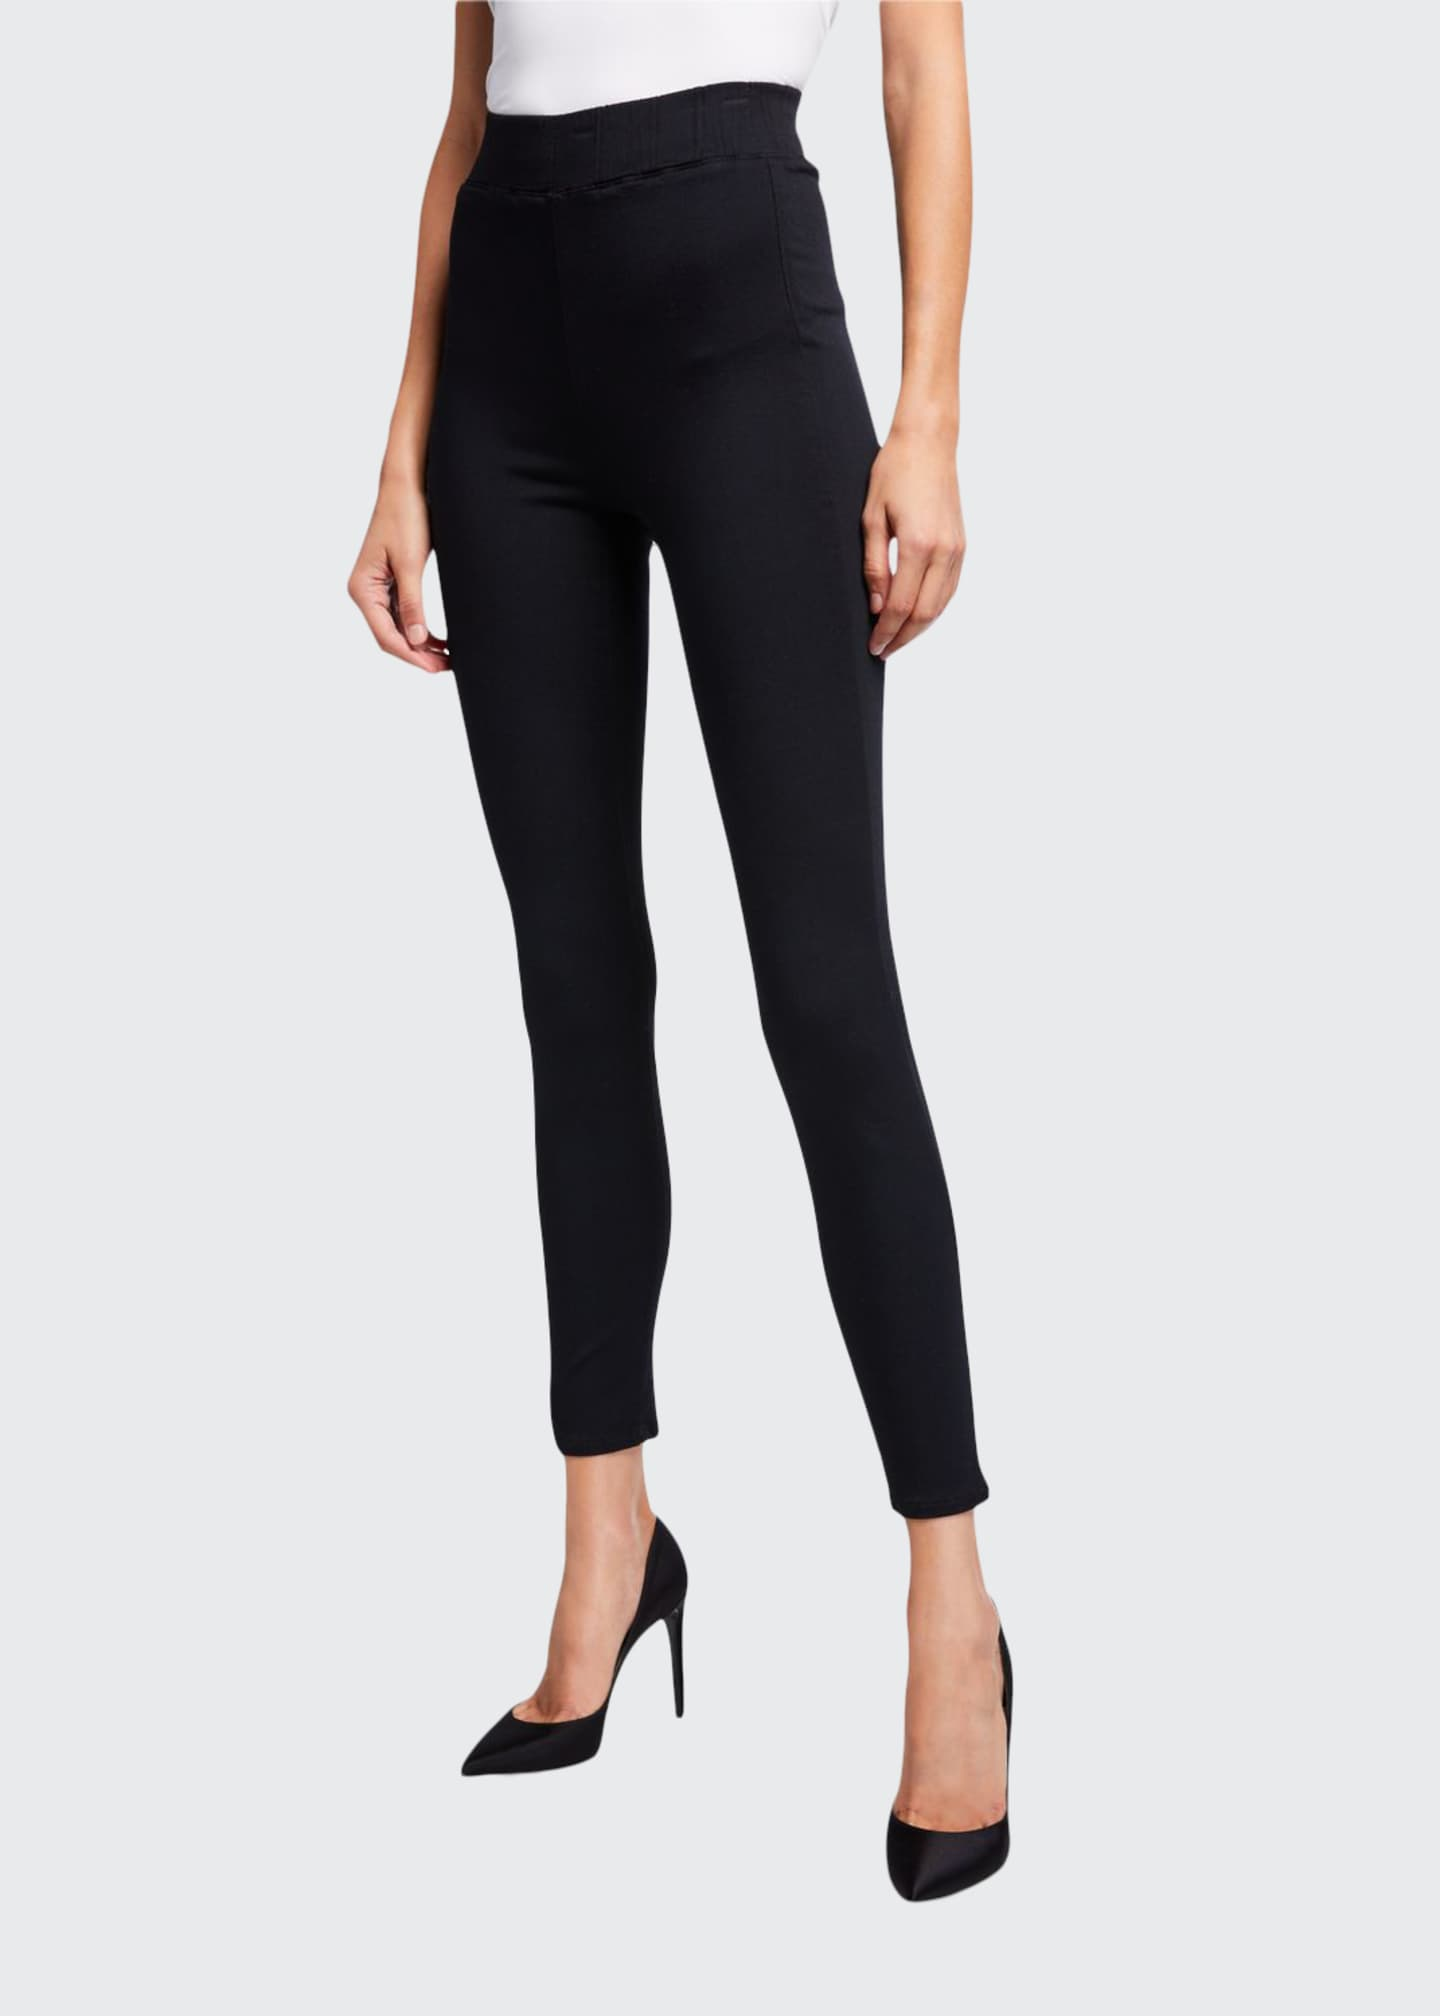 L'Agence Rochelle High-Rise Pull-On Jeans